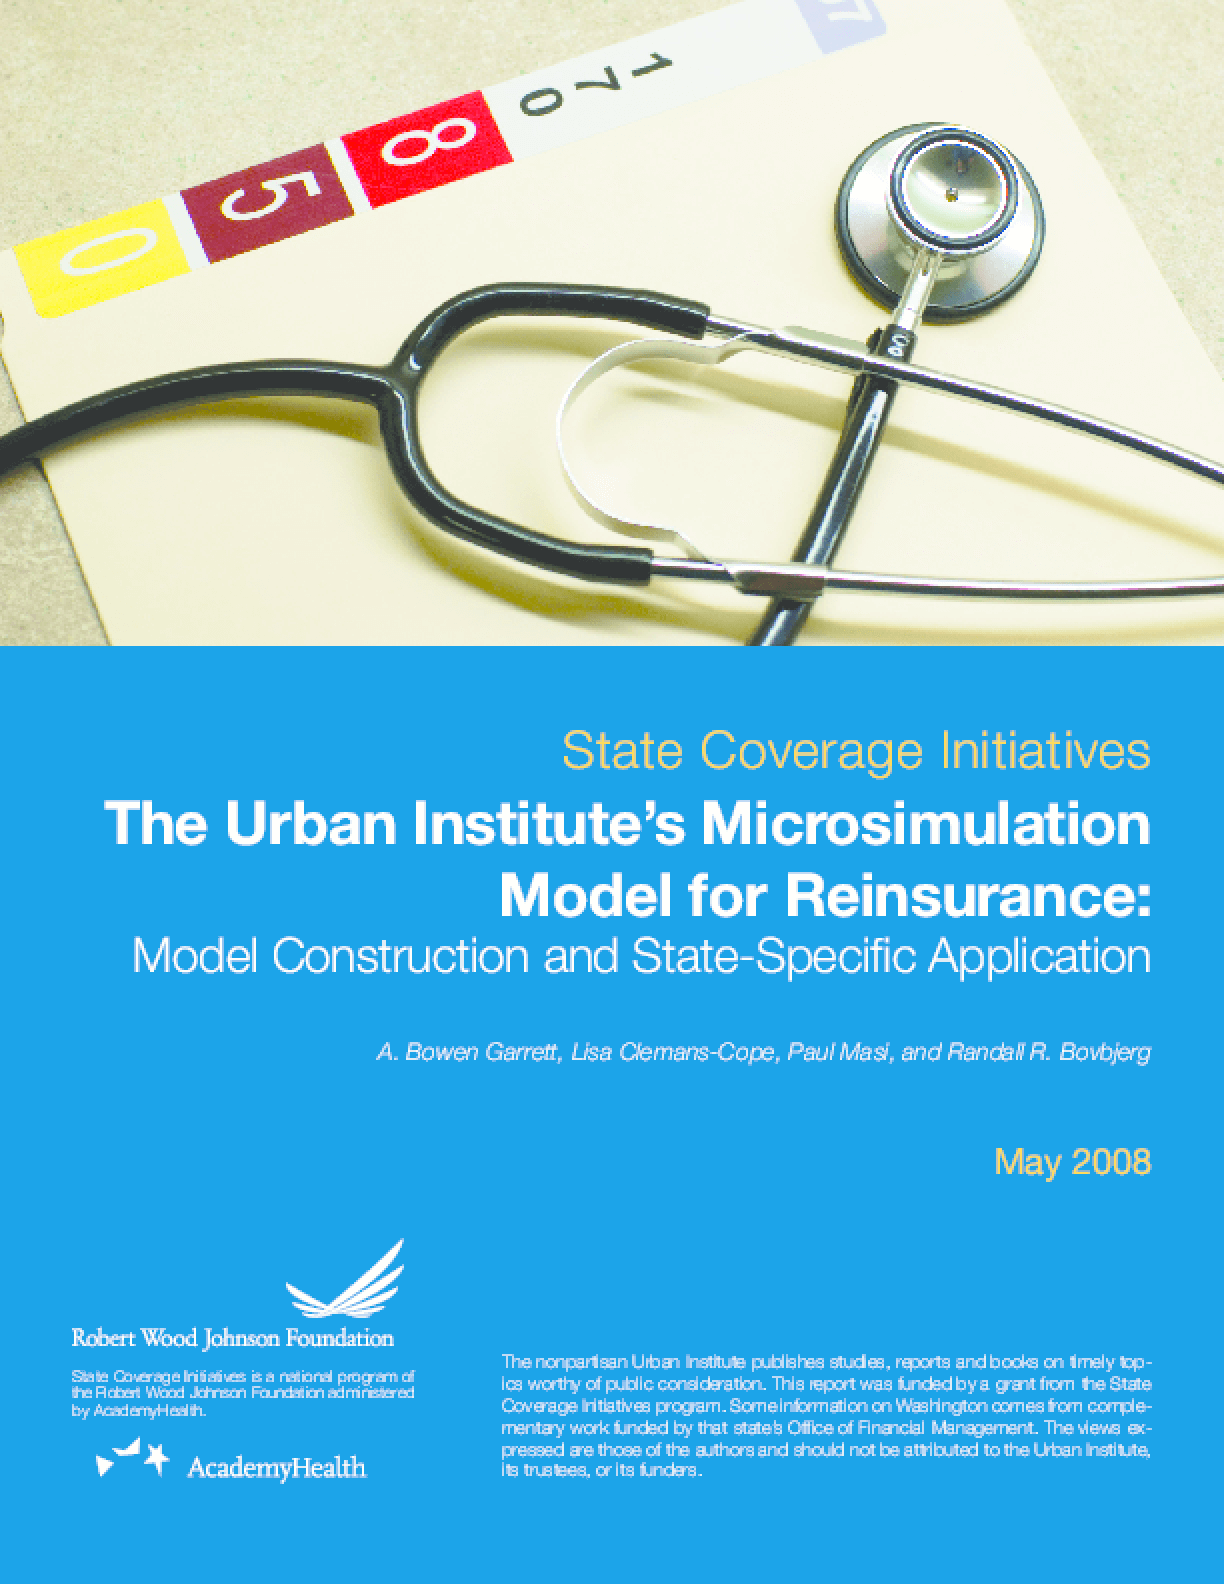 The Urban Institute's Microsimulation Model for Reinsurance: Model Construction and State-Specific Application